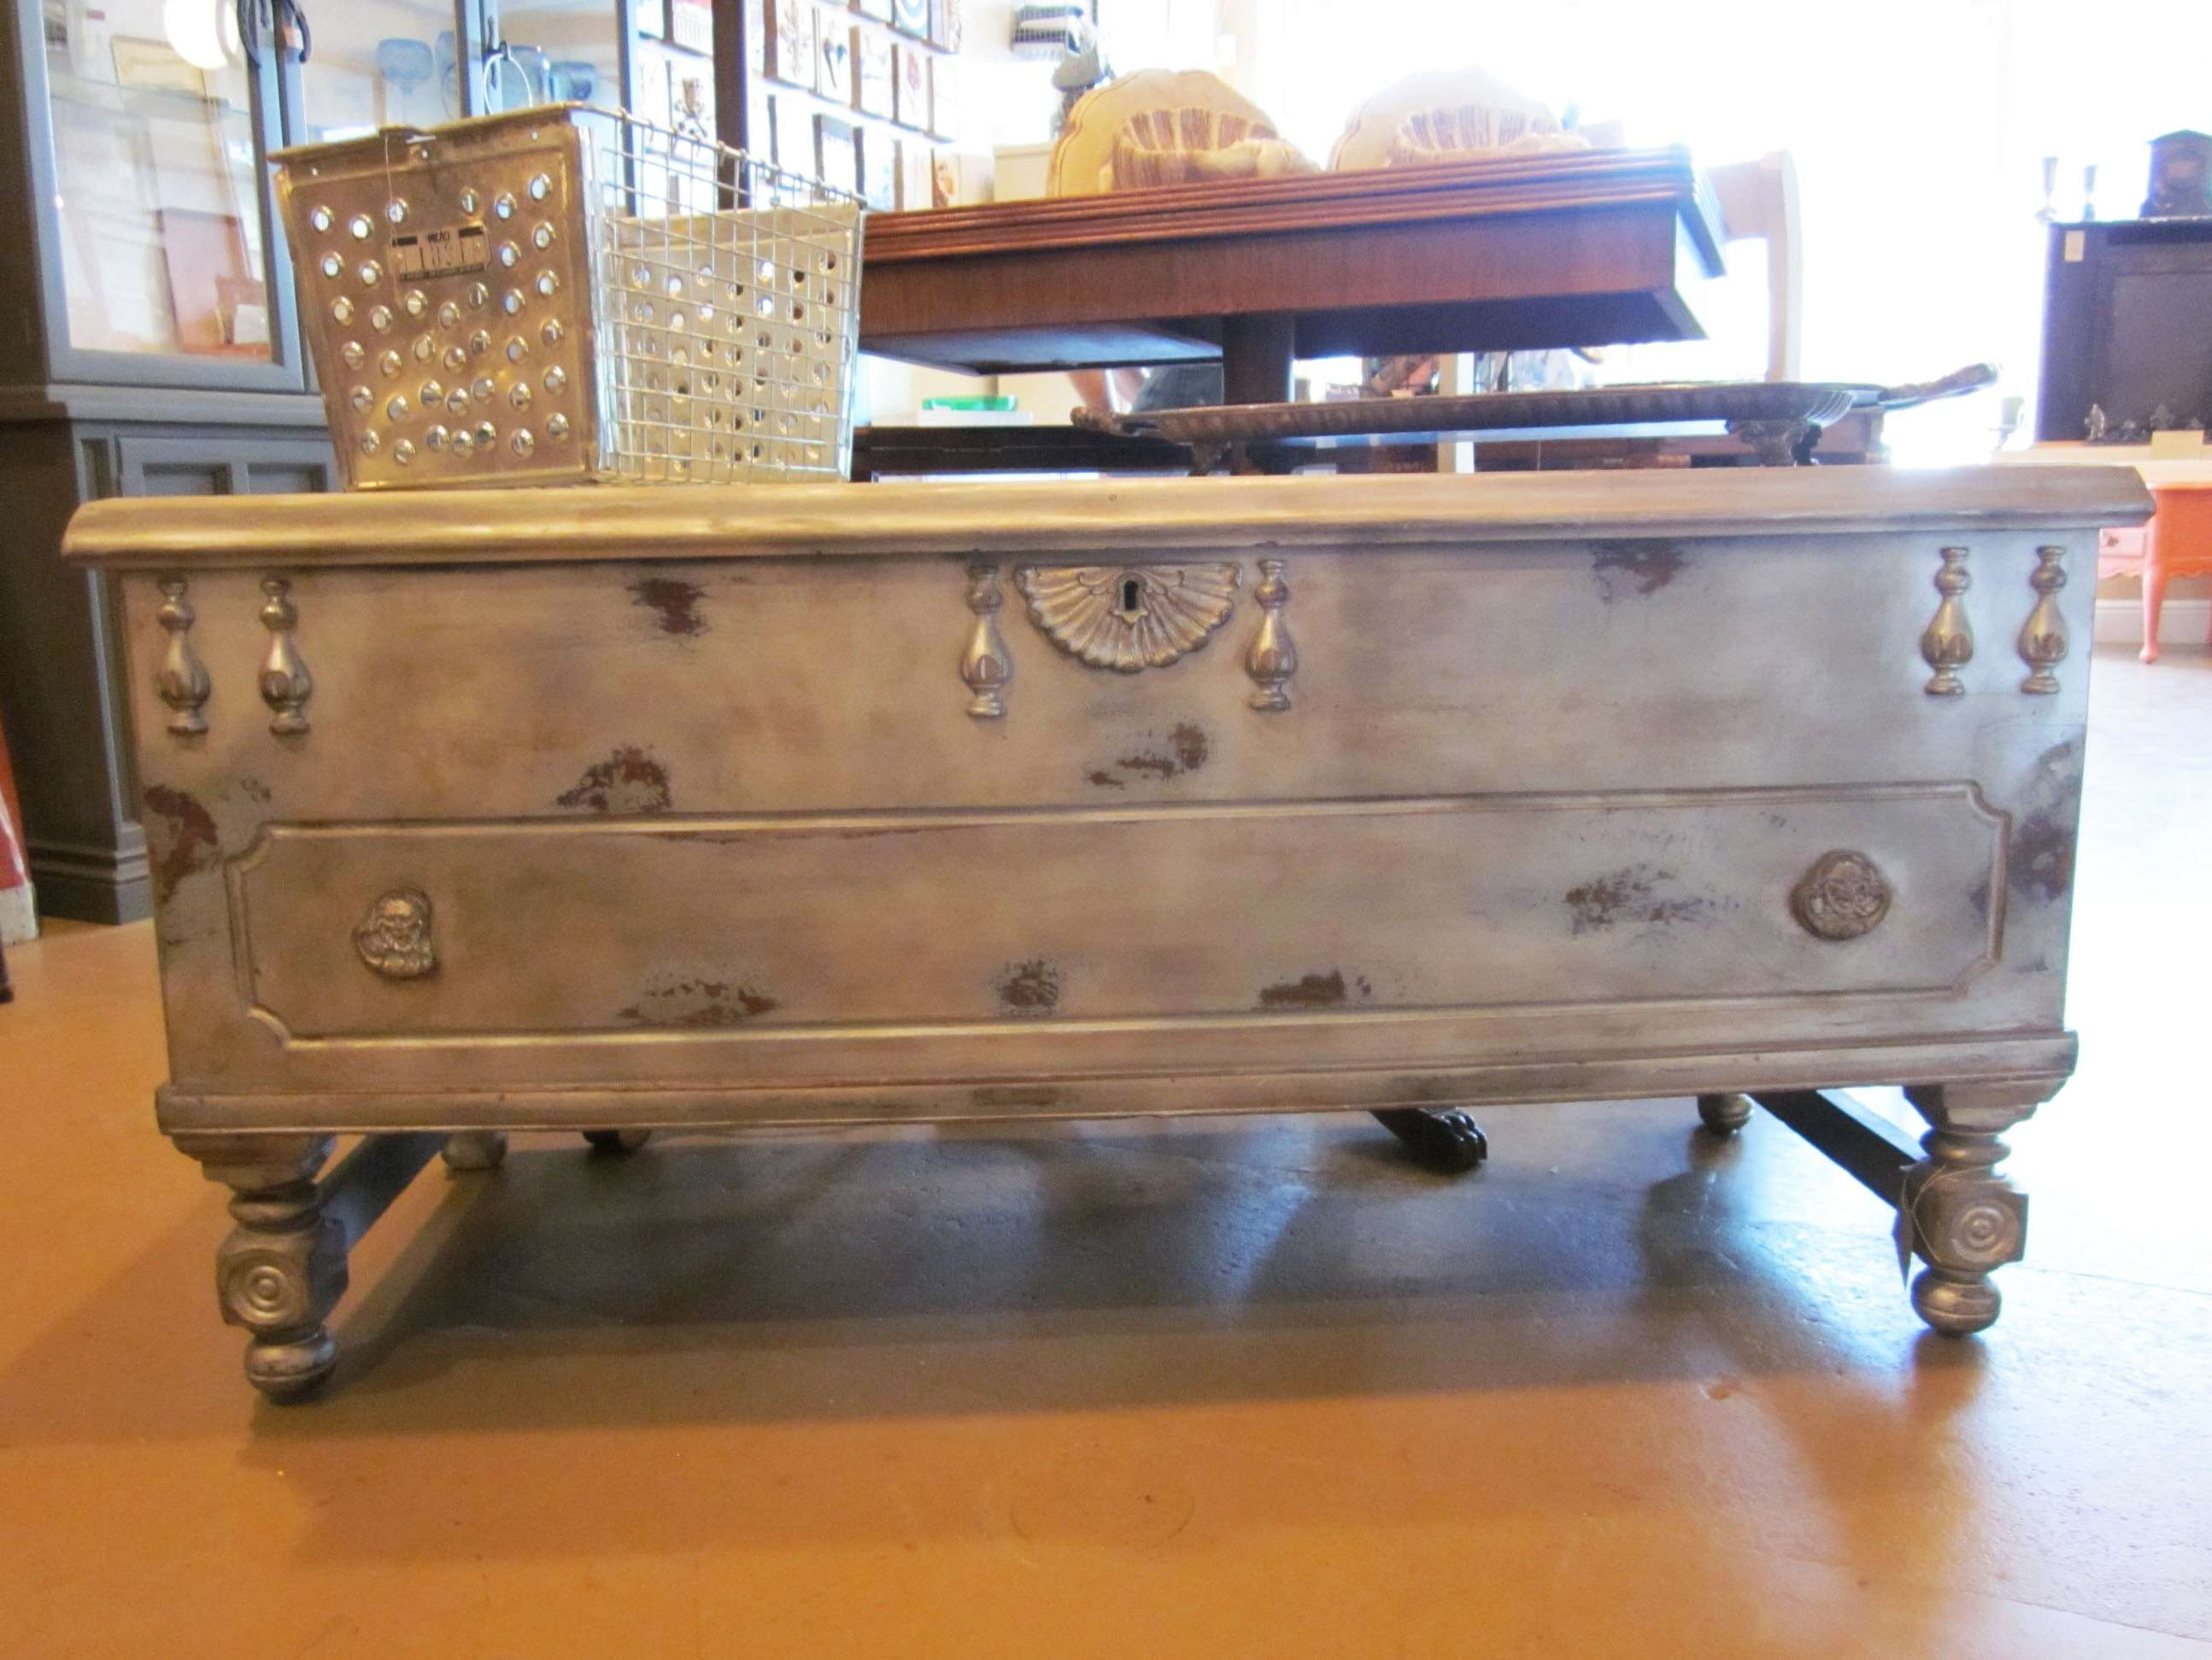 Well Known Old Trunks As Coffee Tables For Steamer Trunk Coffee Tables Have Unique & Rustic Designs (View 18 of 20)